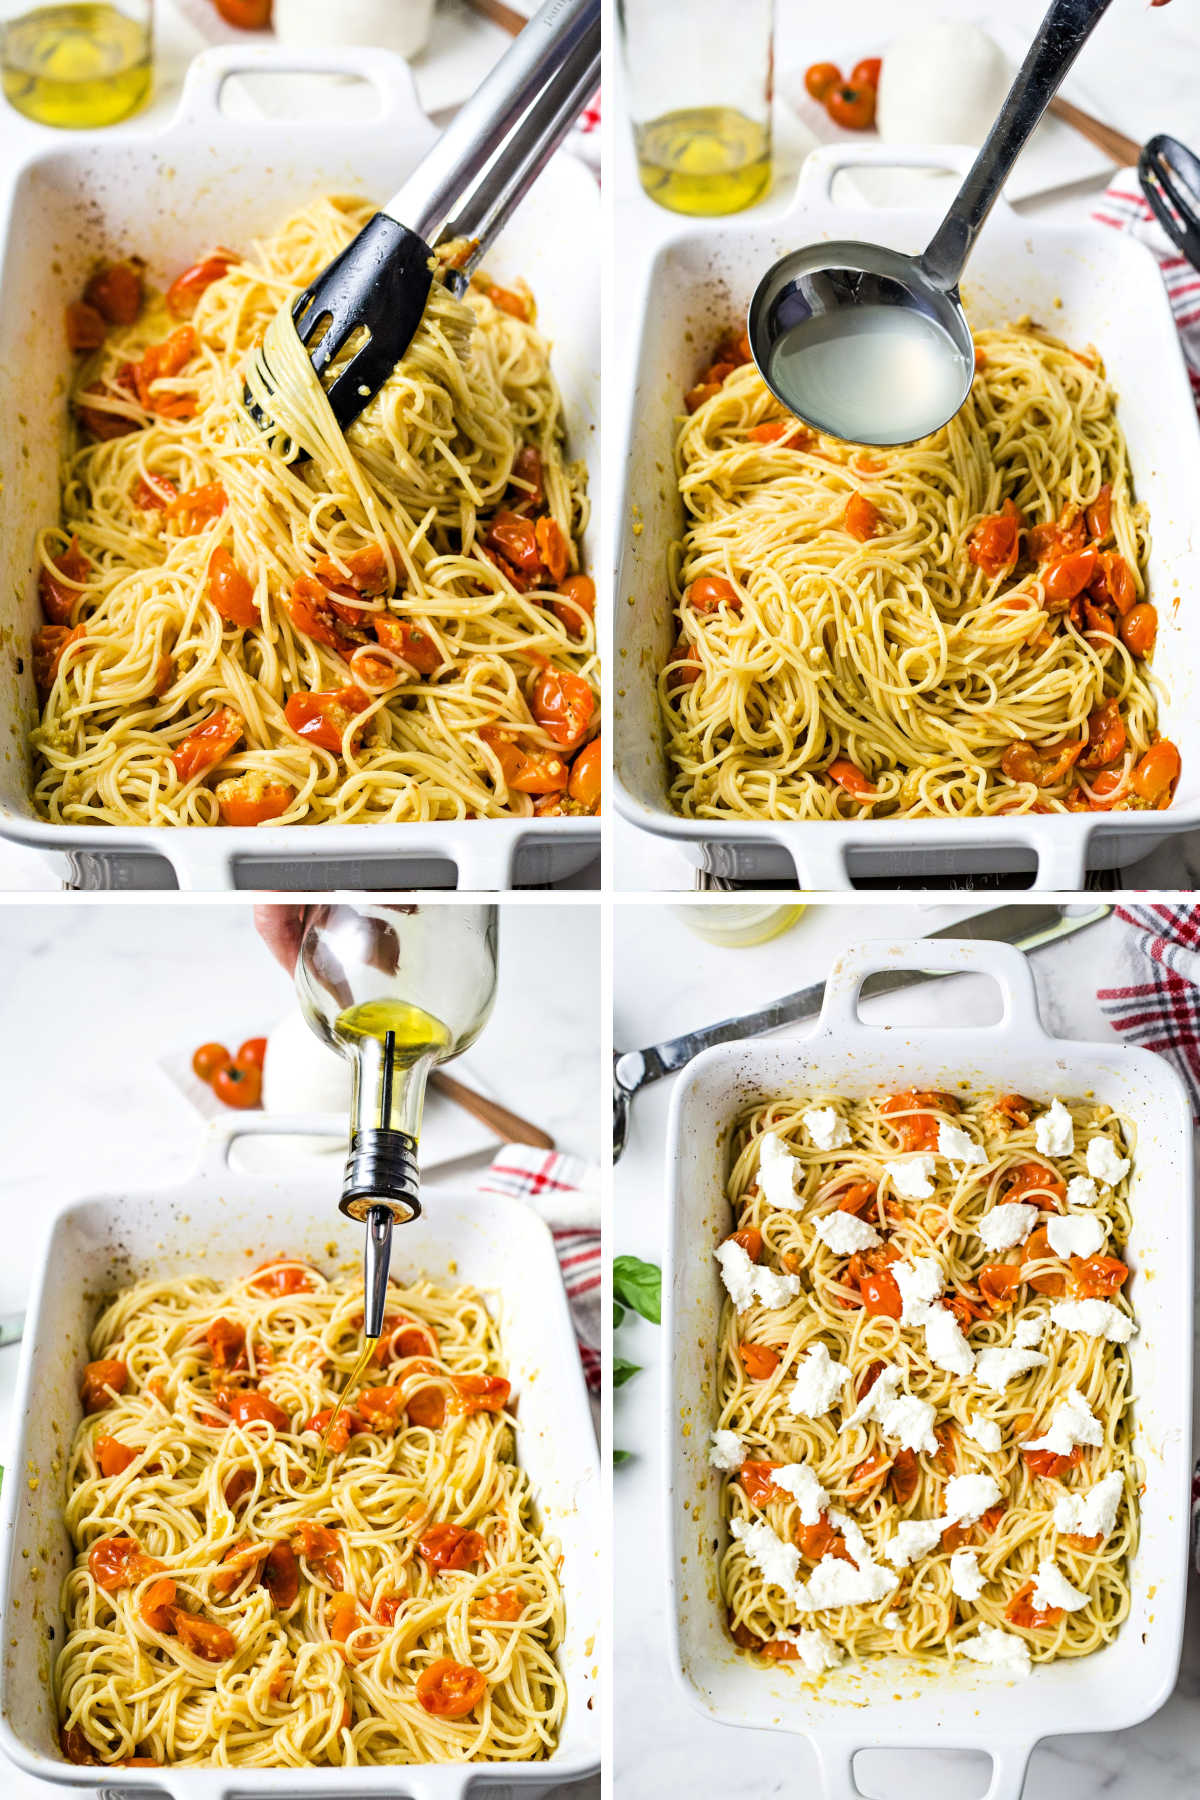 process steps for assembling cherry tomato pasta: combine noodles with roasted cherry tomatoes; add some pasta water; drizzle with more olive oil; crumble fresh mozzarella cheese on top.